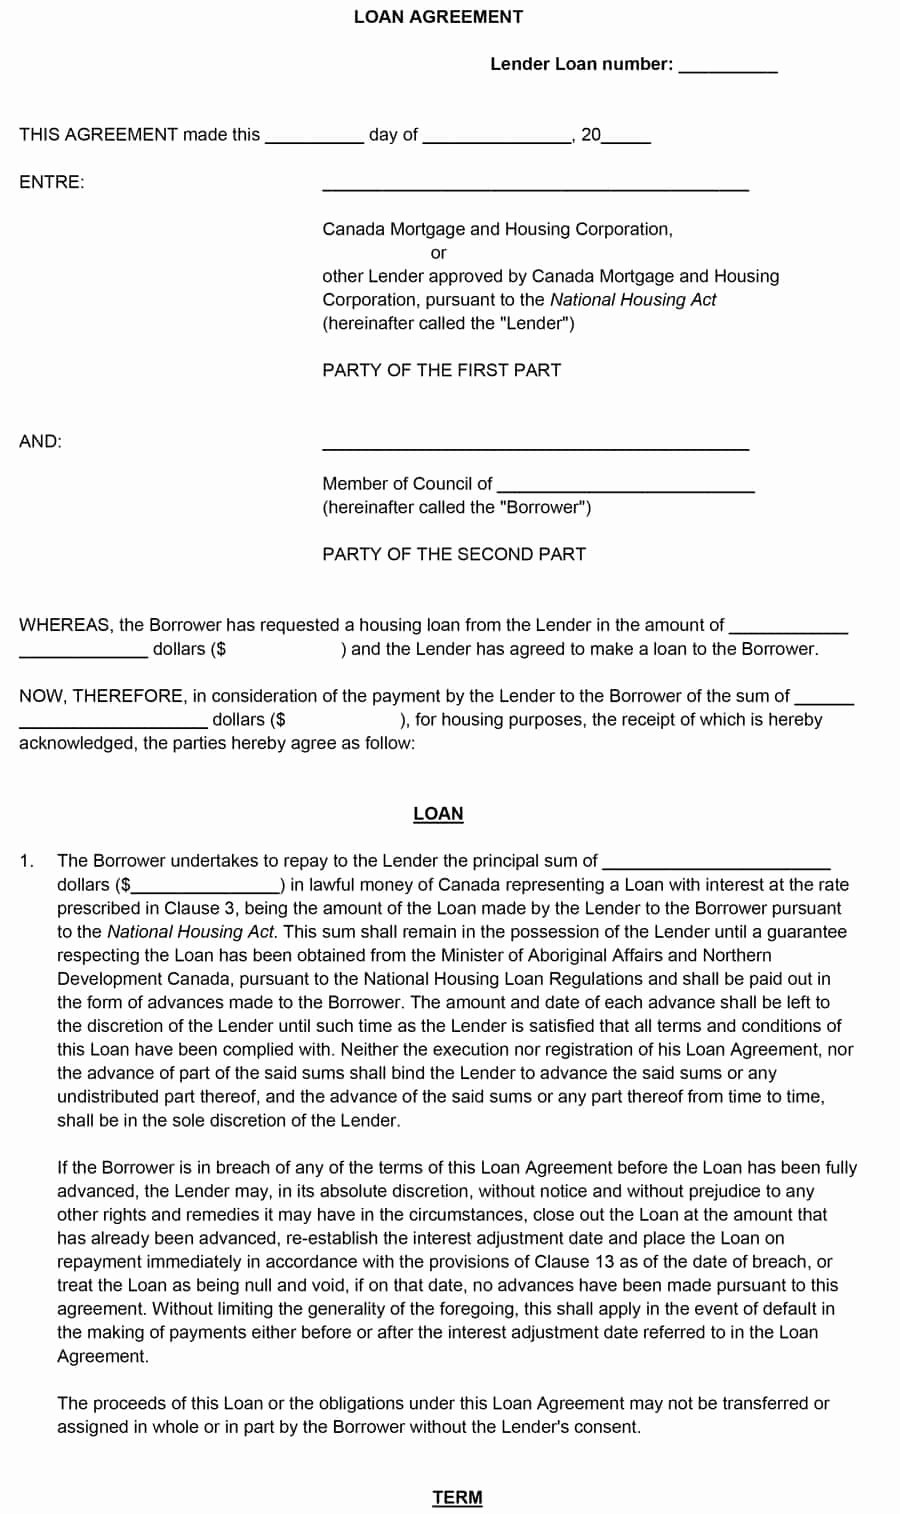 Free Loan Agreement Template Word Awesome 40 Free Loan Agreement Templates [word & Pdf] Template Lab